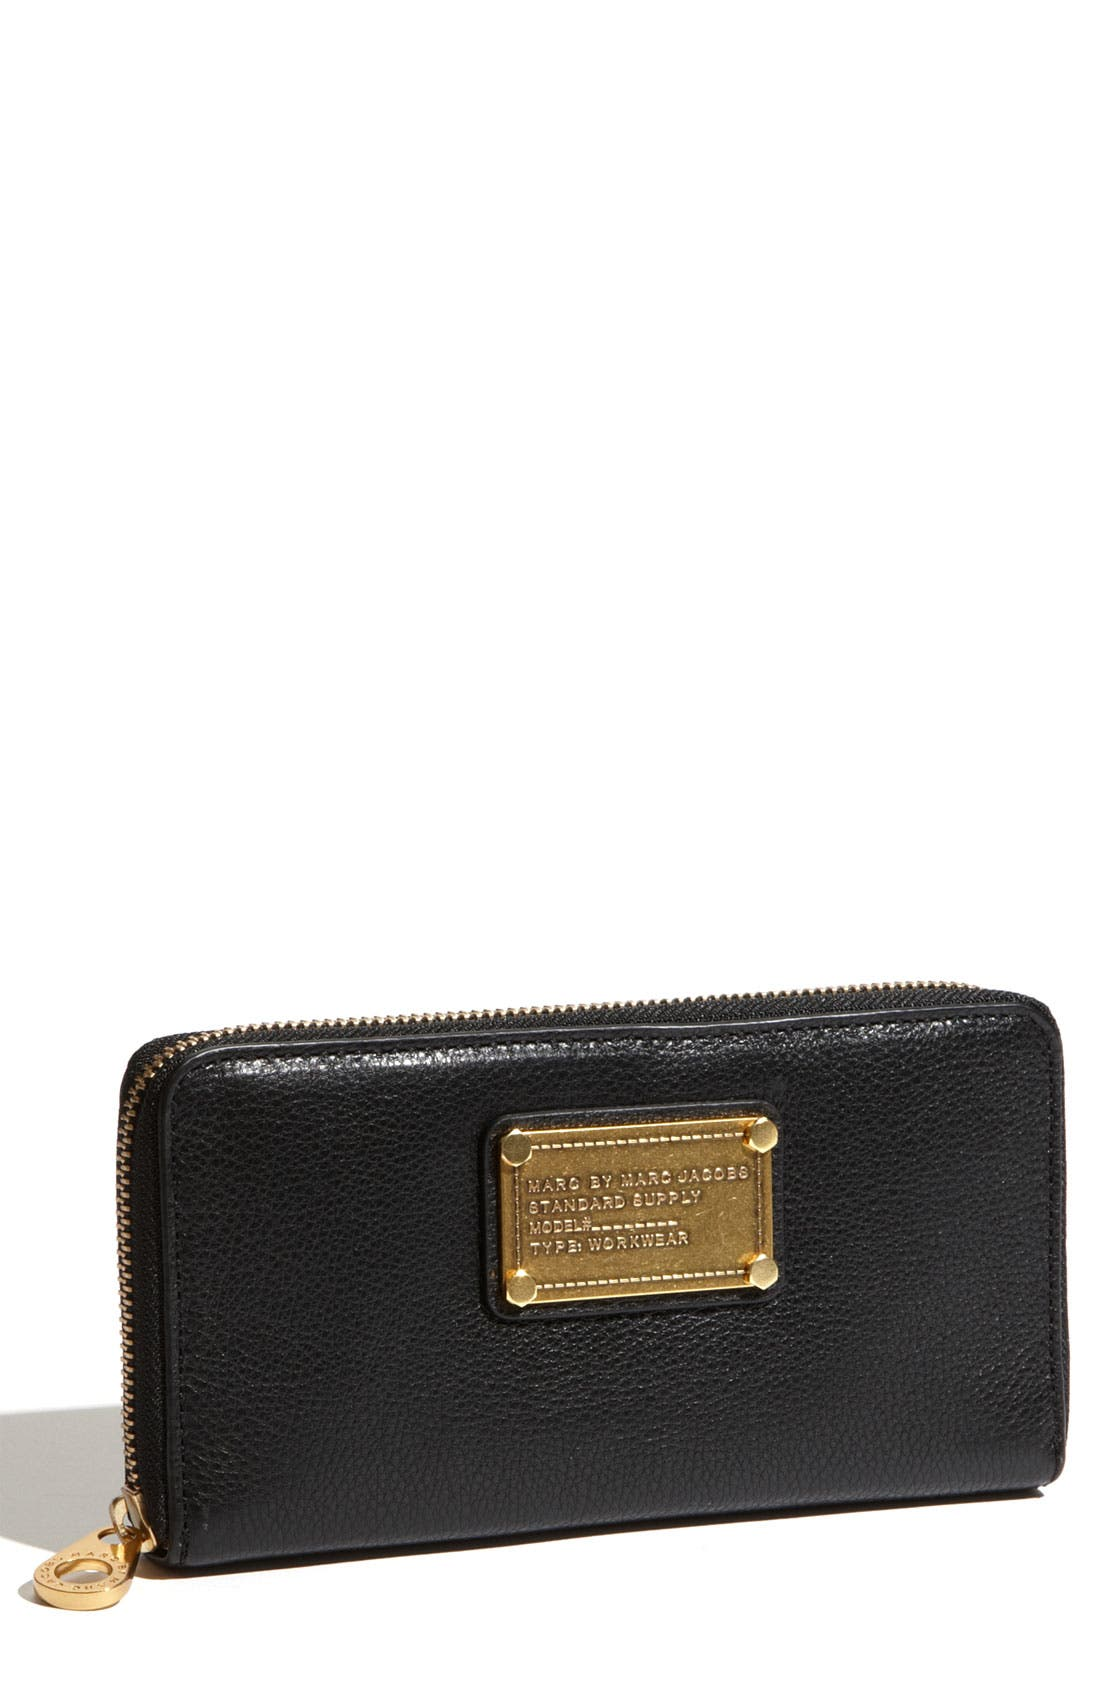 Alternate Image 1 Selected - MARC BY MARC JACOBS 'Classic Q - Vertical Zippy' Wallet